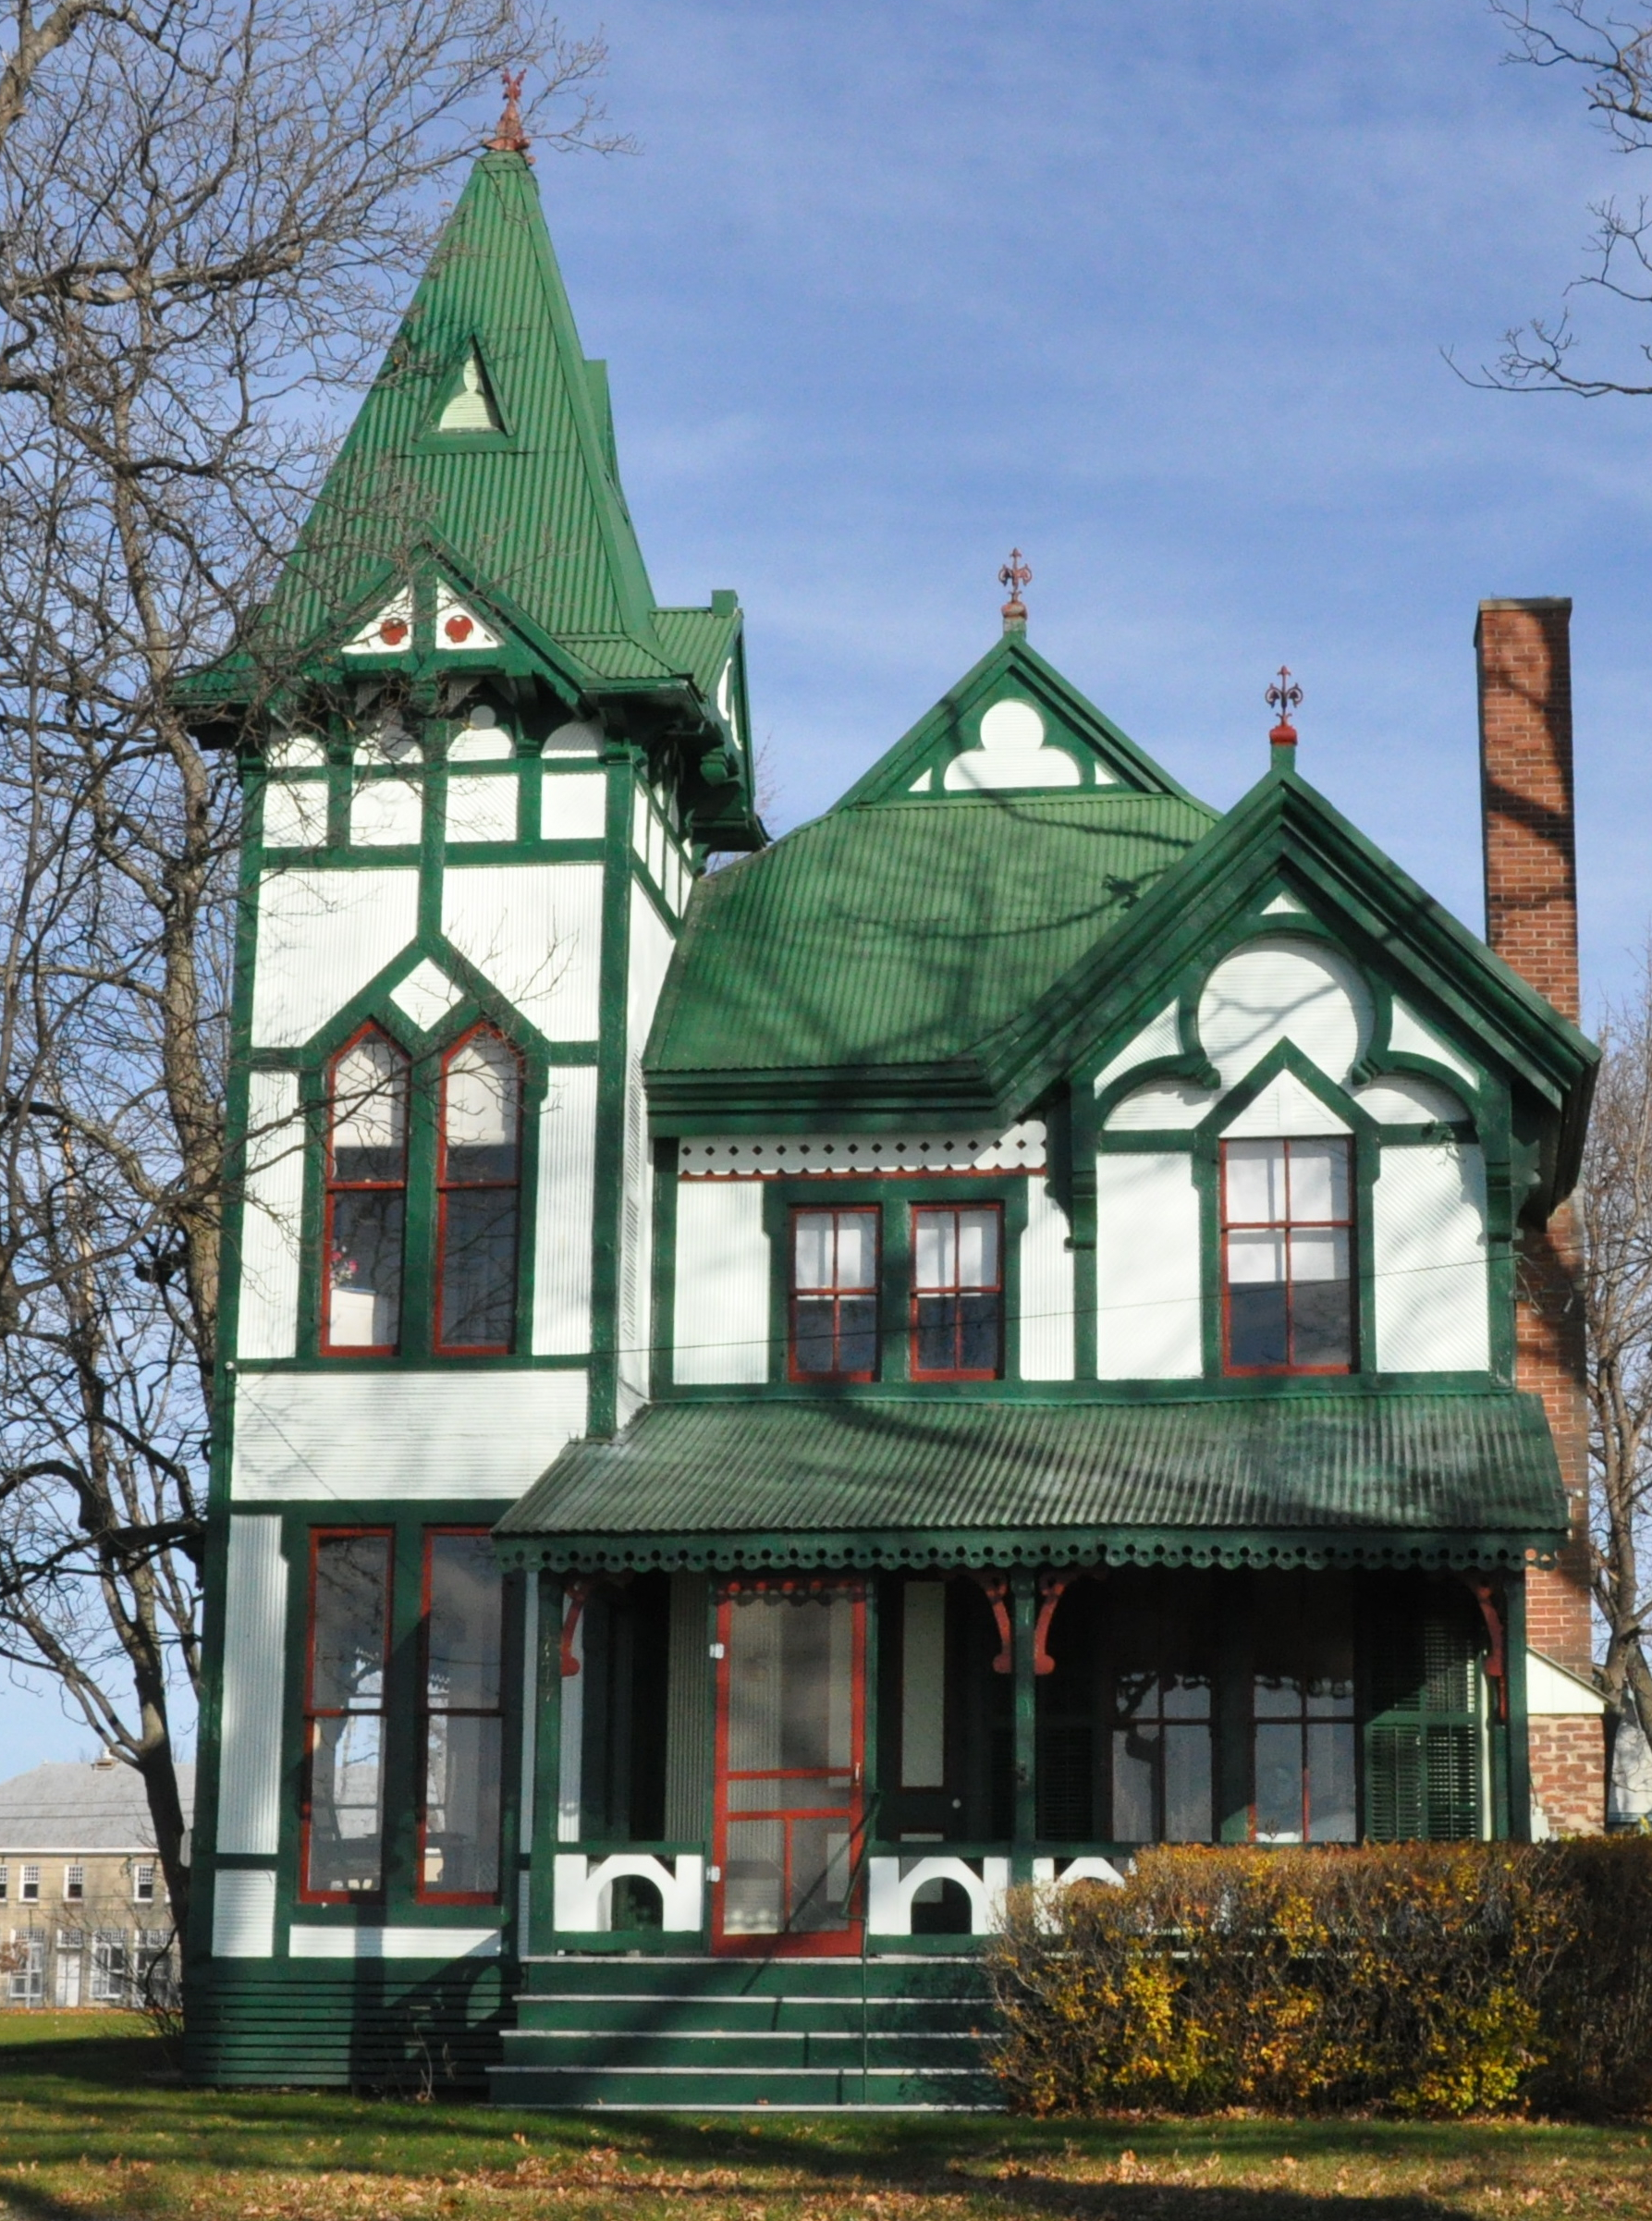 Carpenter gothic architecture in the united states for Cottage architecture